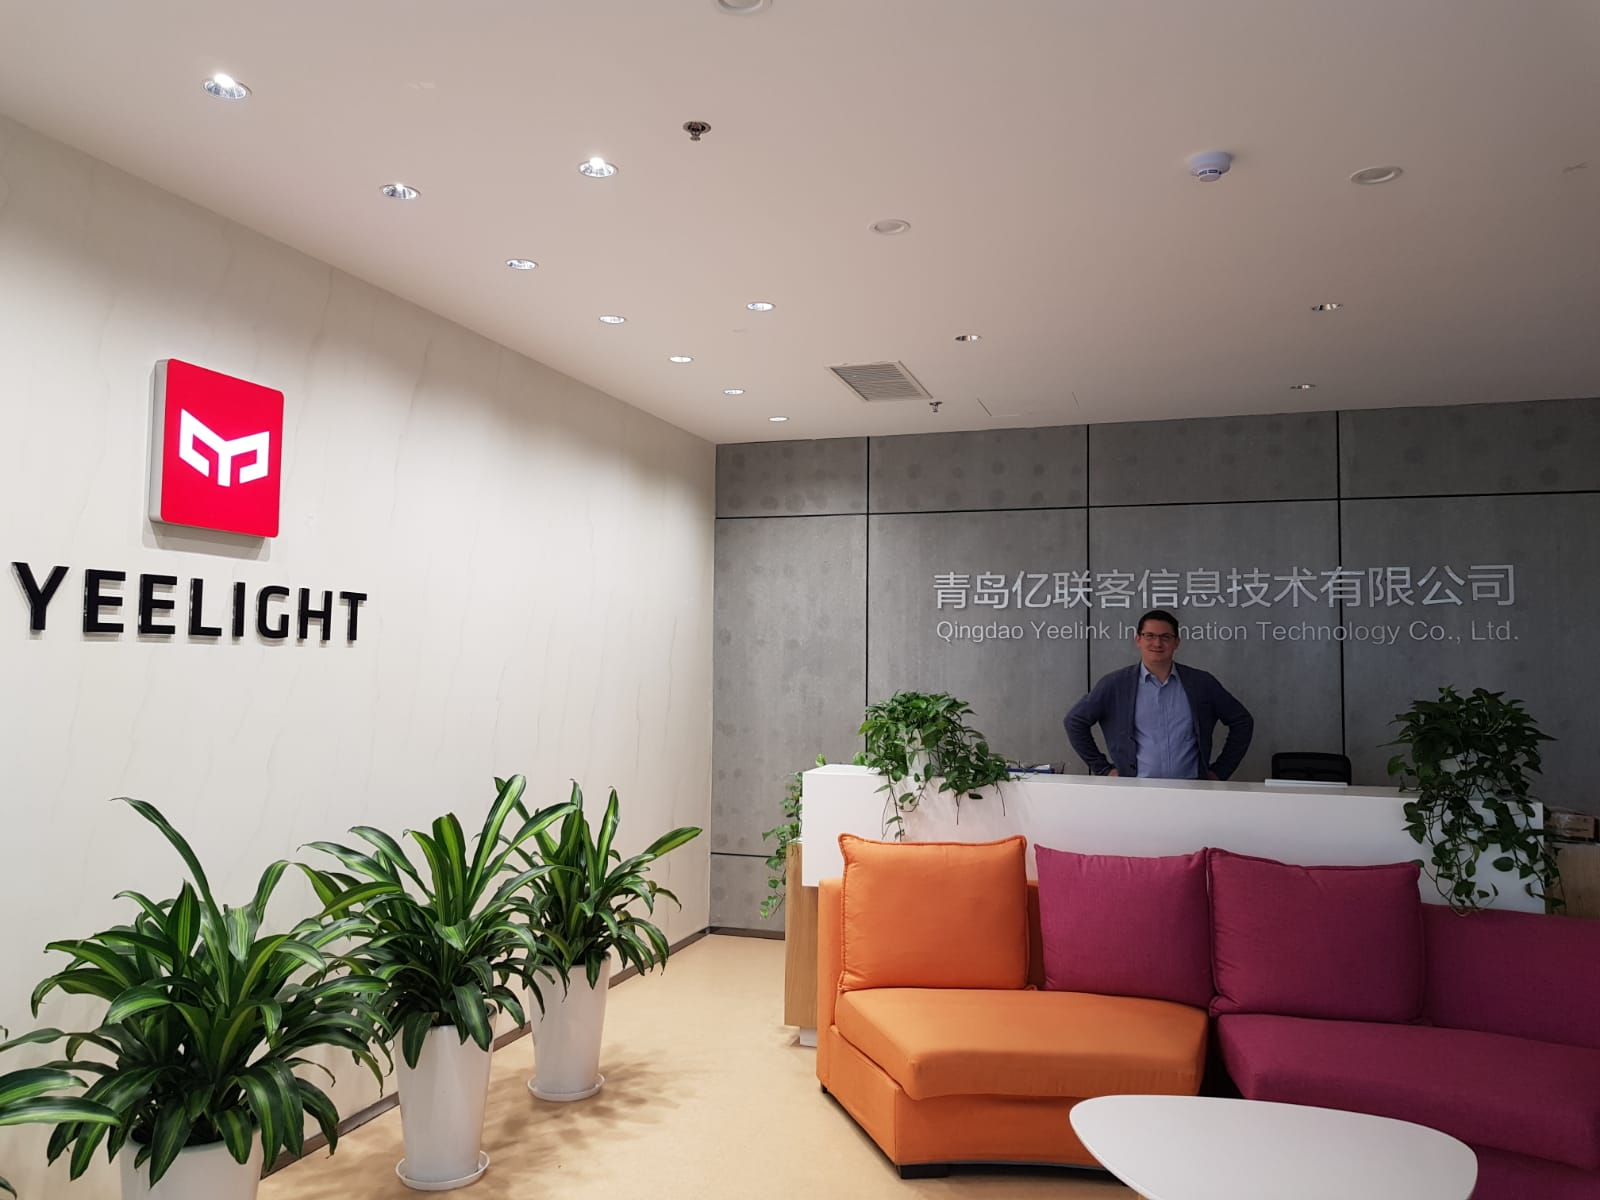 livebau and Yeelight think about cooperating